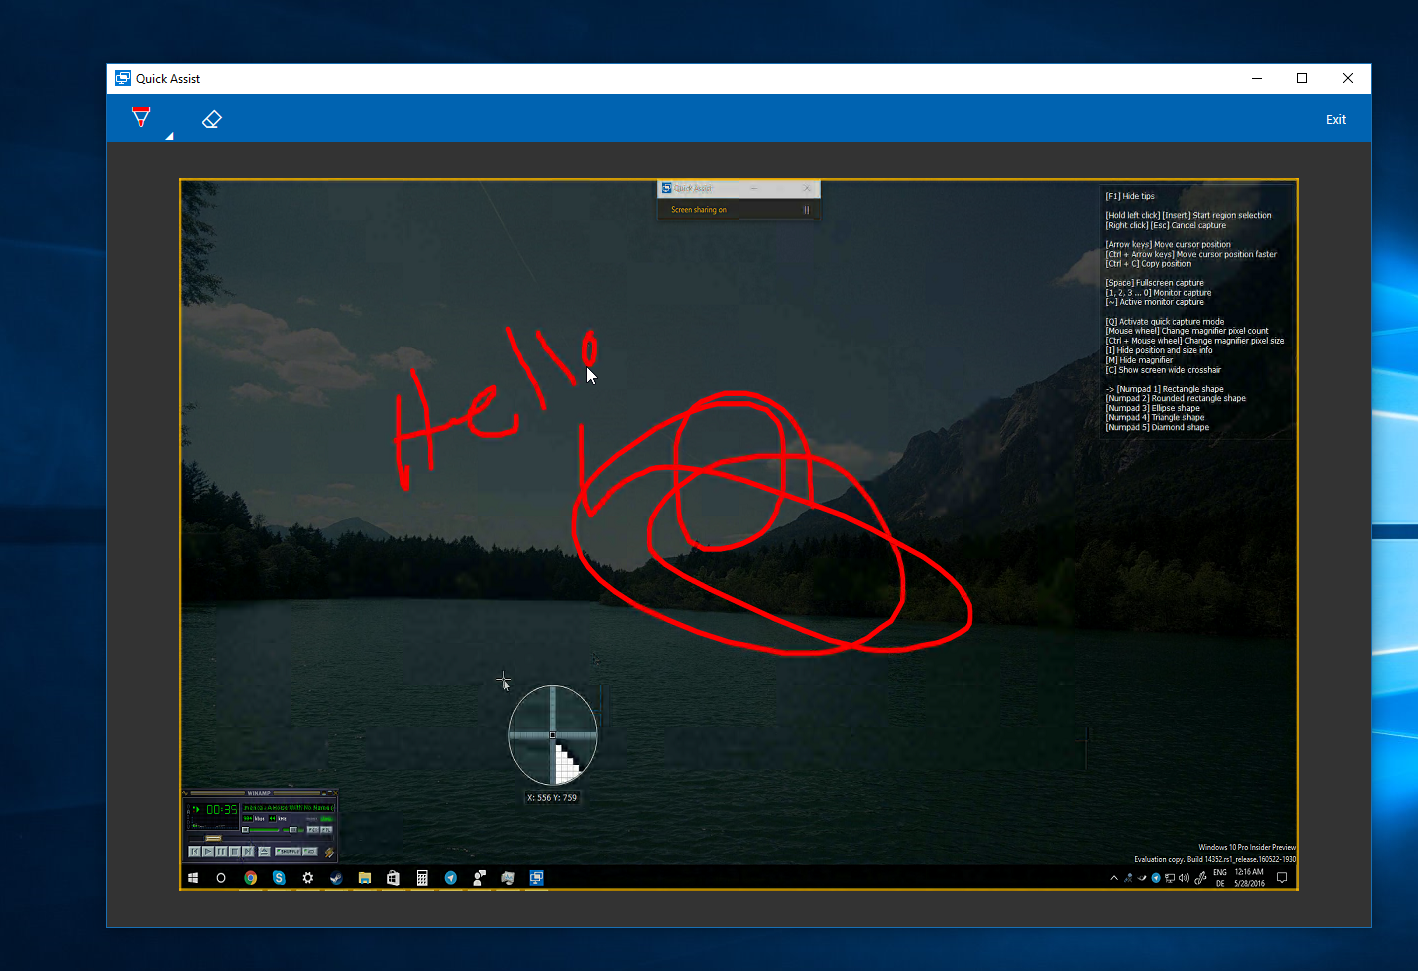 Microsoft is working on a TeamViewer competitor for Windows